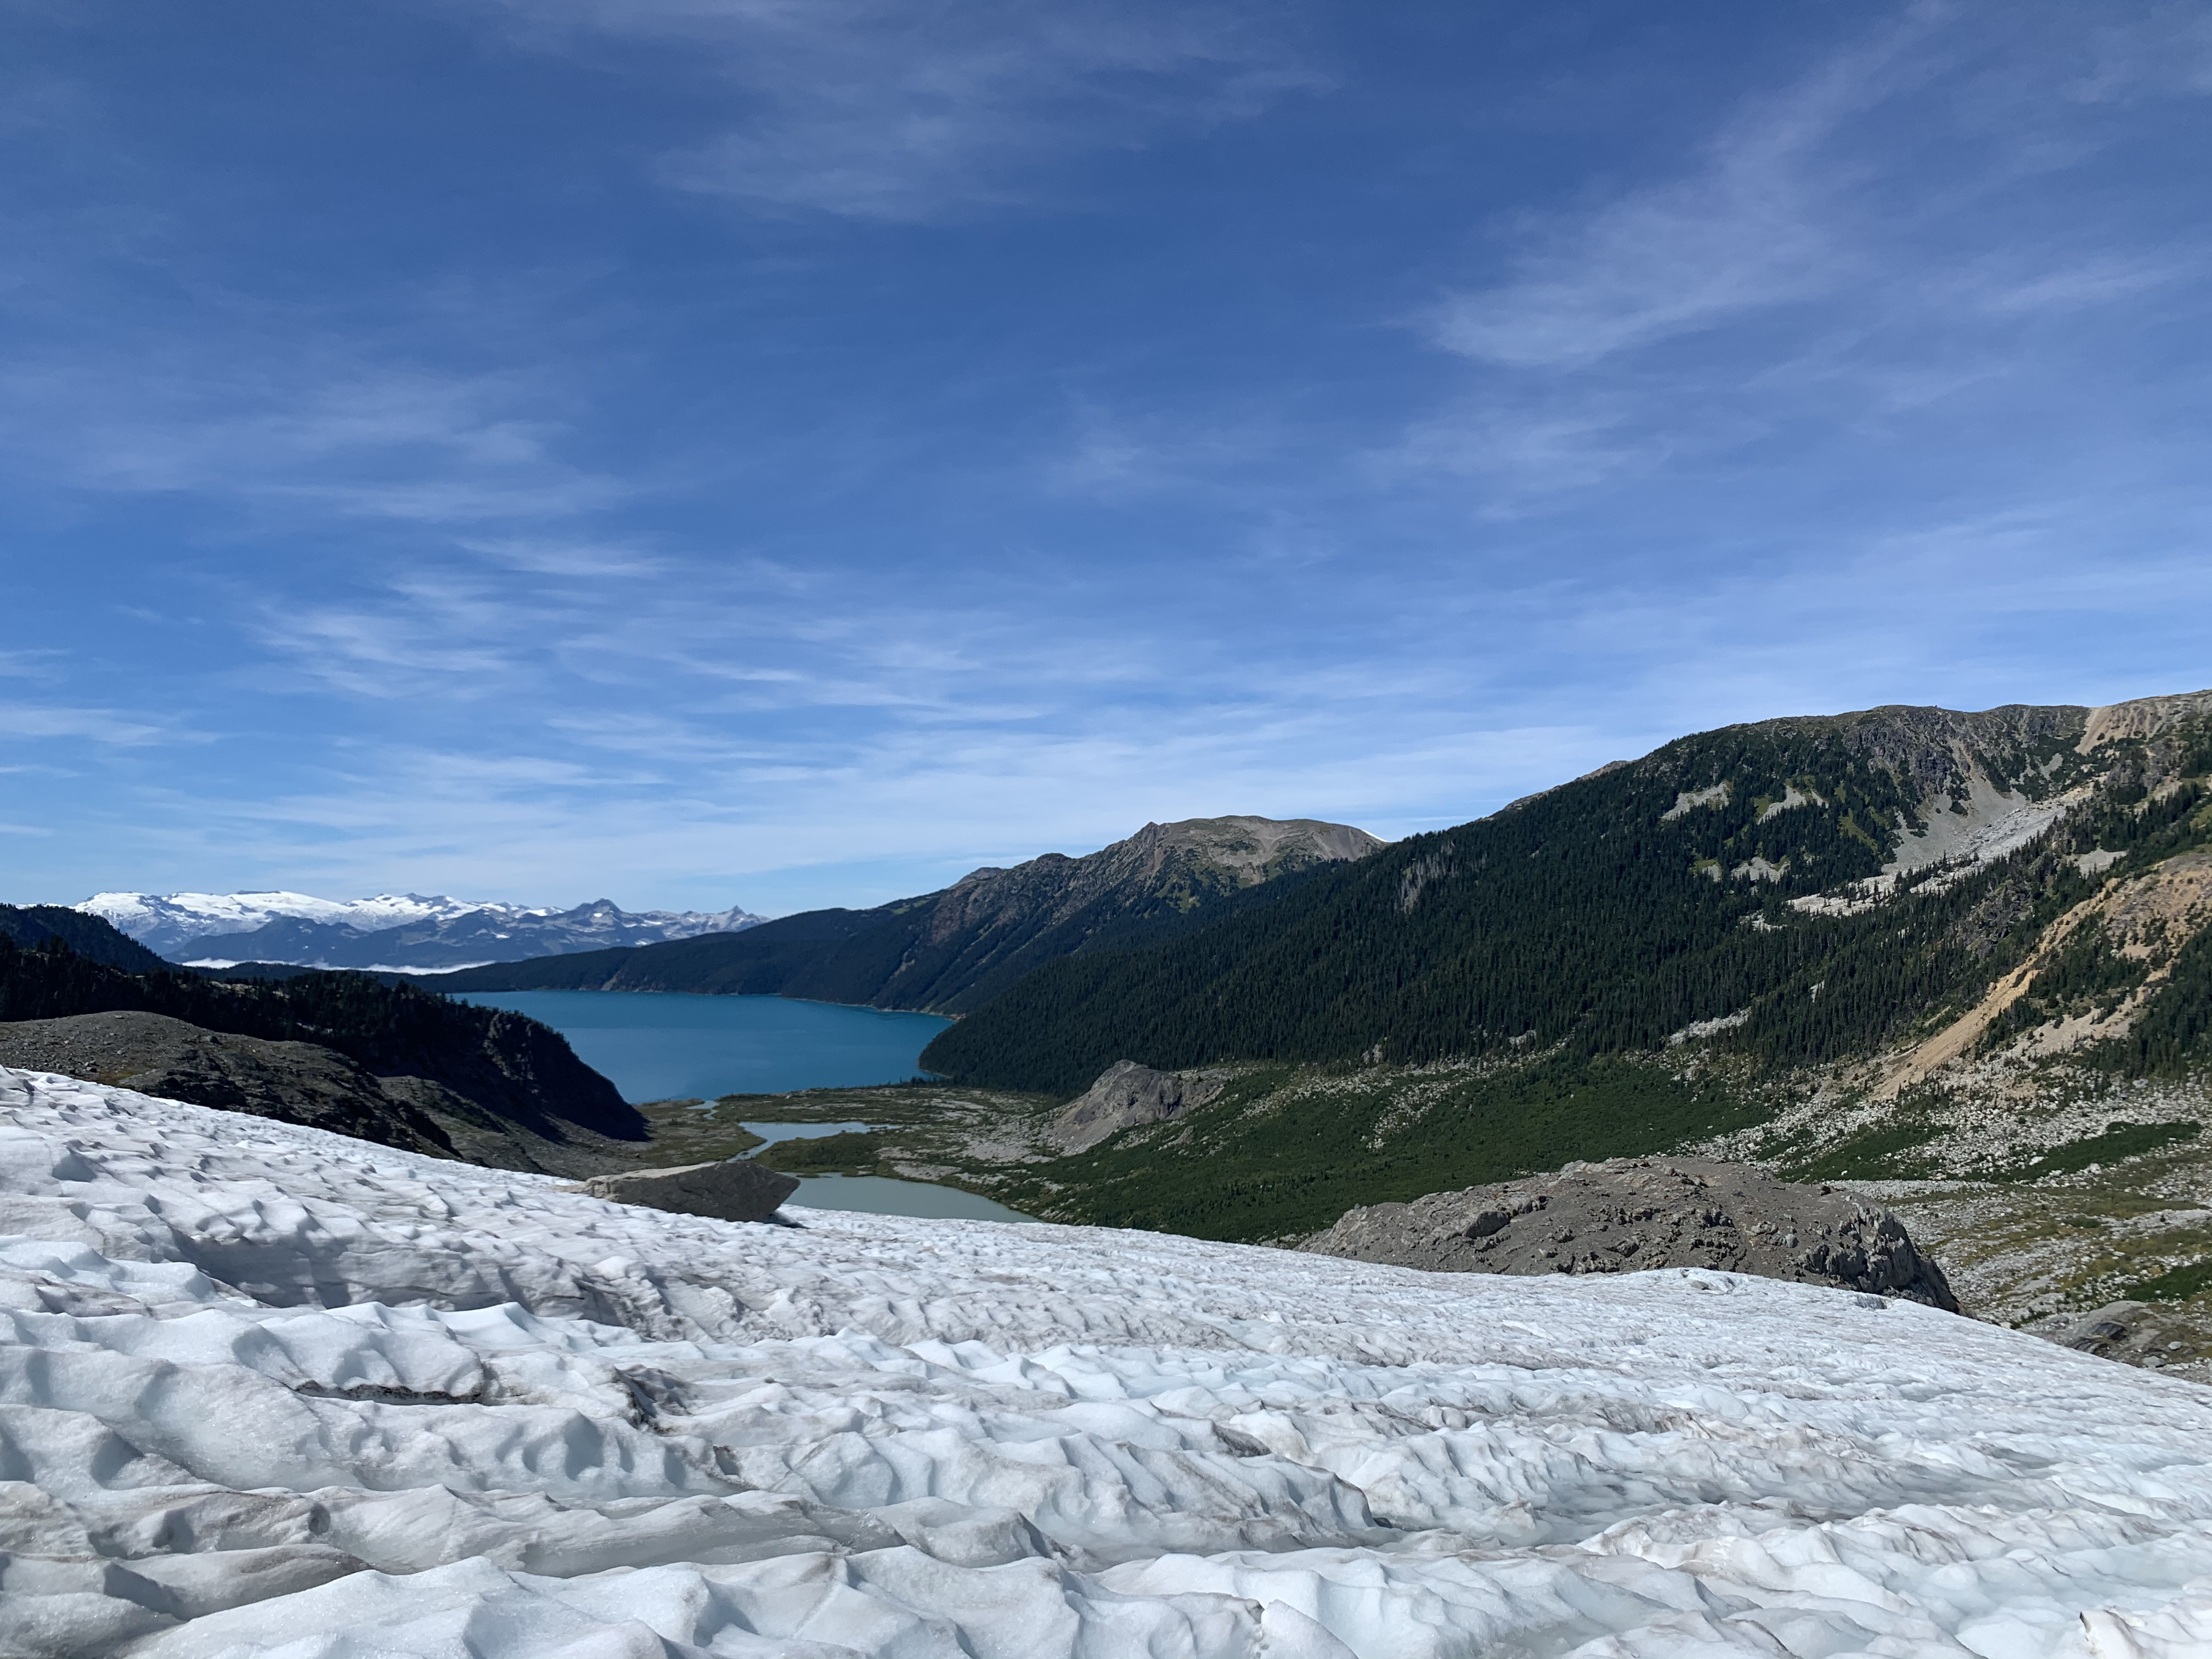 The view of the lake from the glacier. Photo by Haley